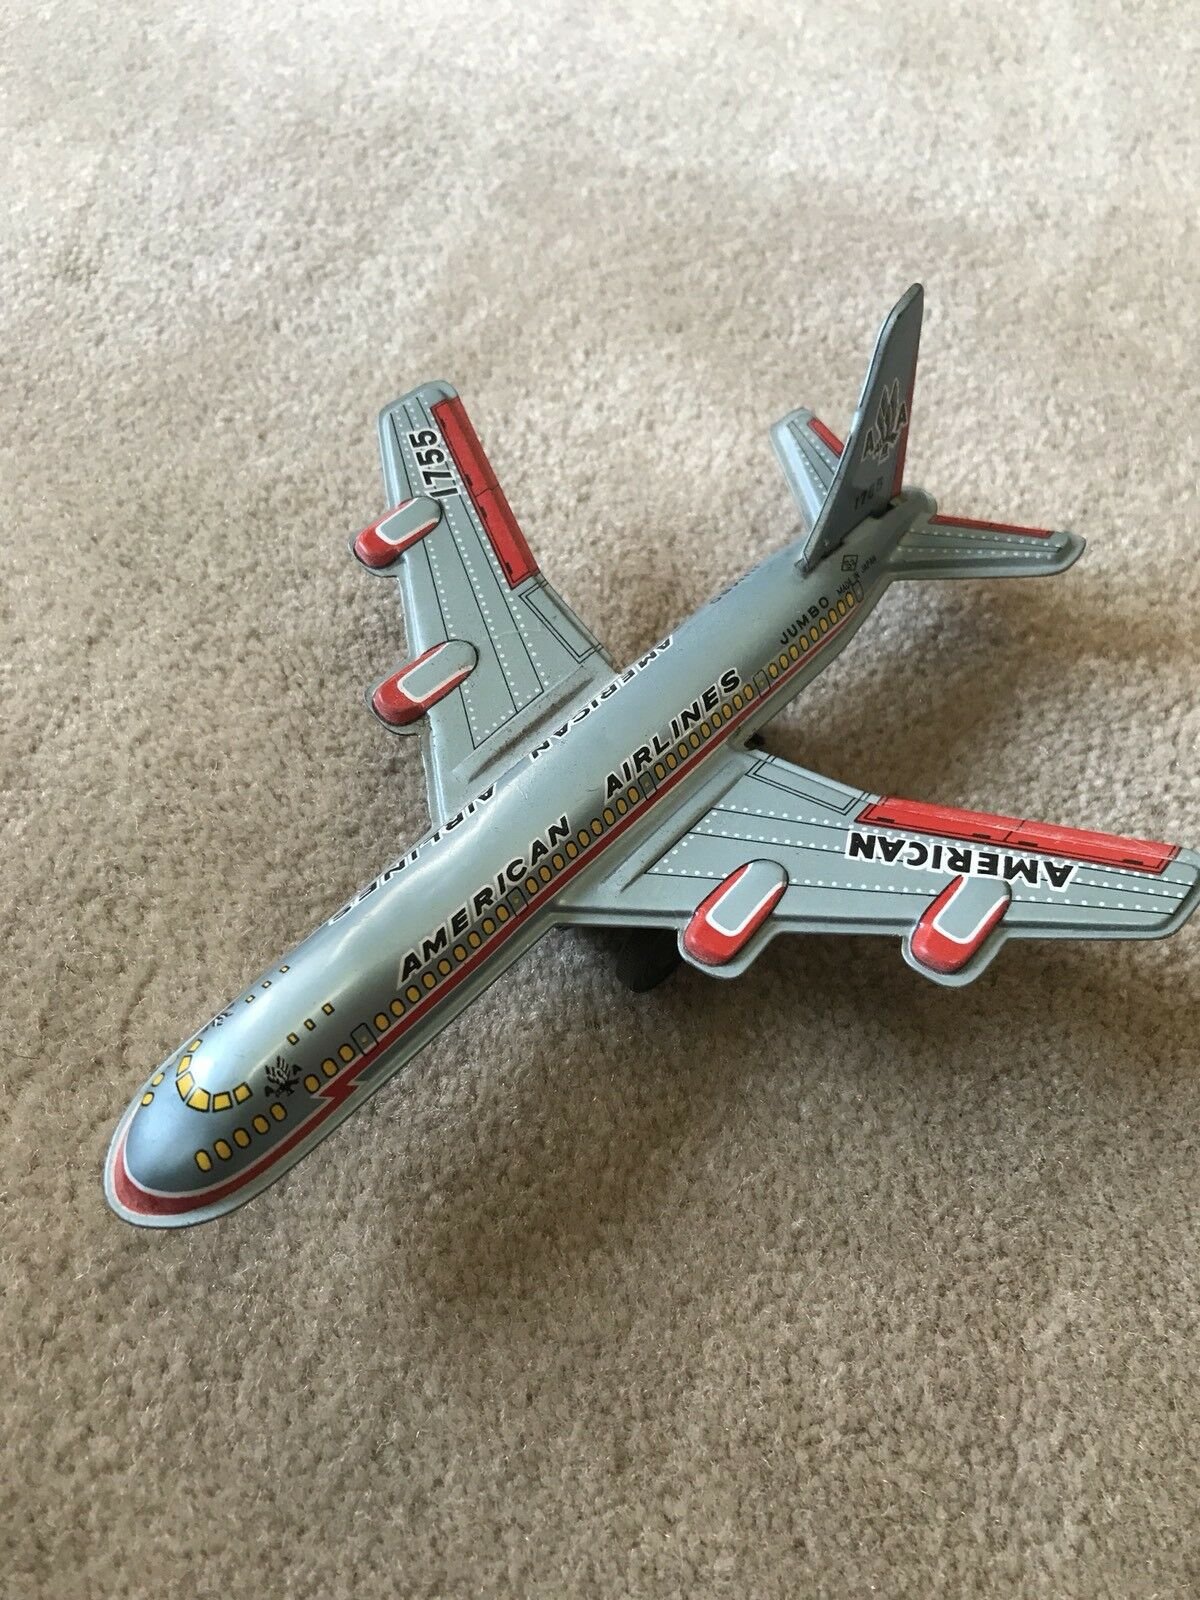 Vintage American Airlines Tin Litho Friction Airplane Saito Brand Made In Japan